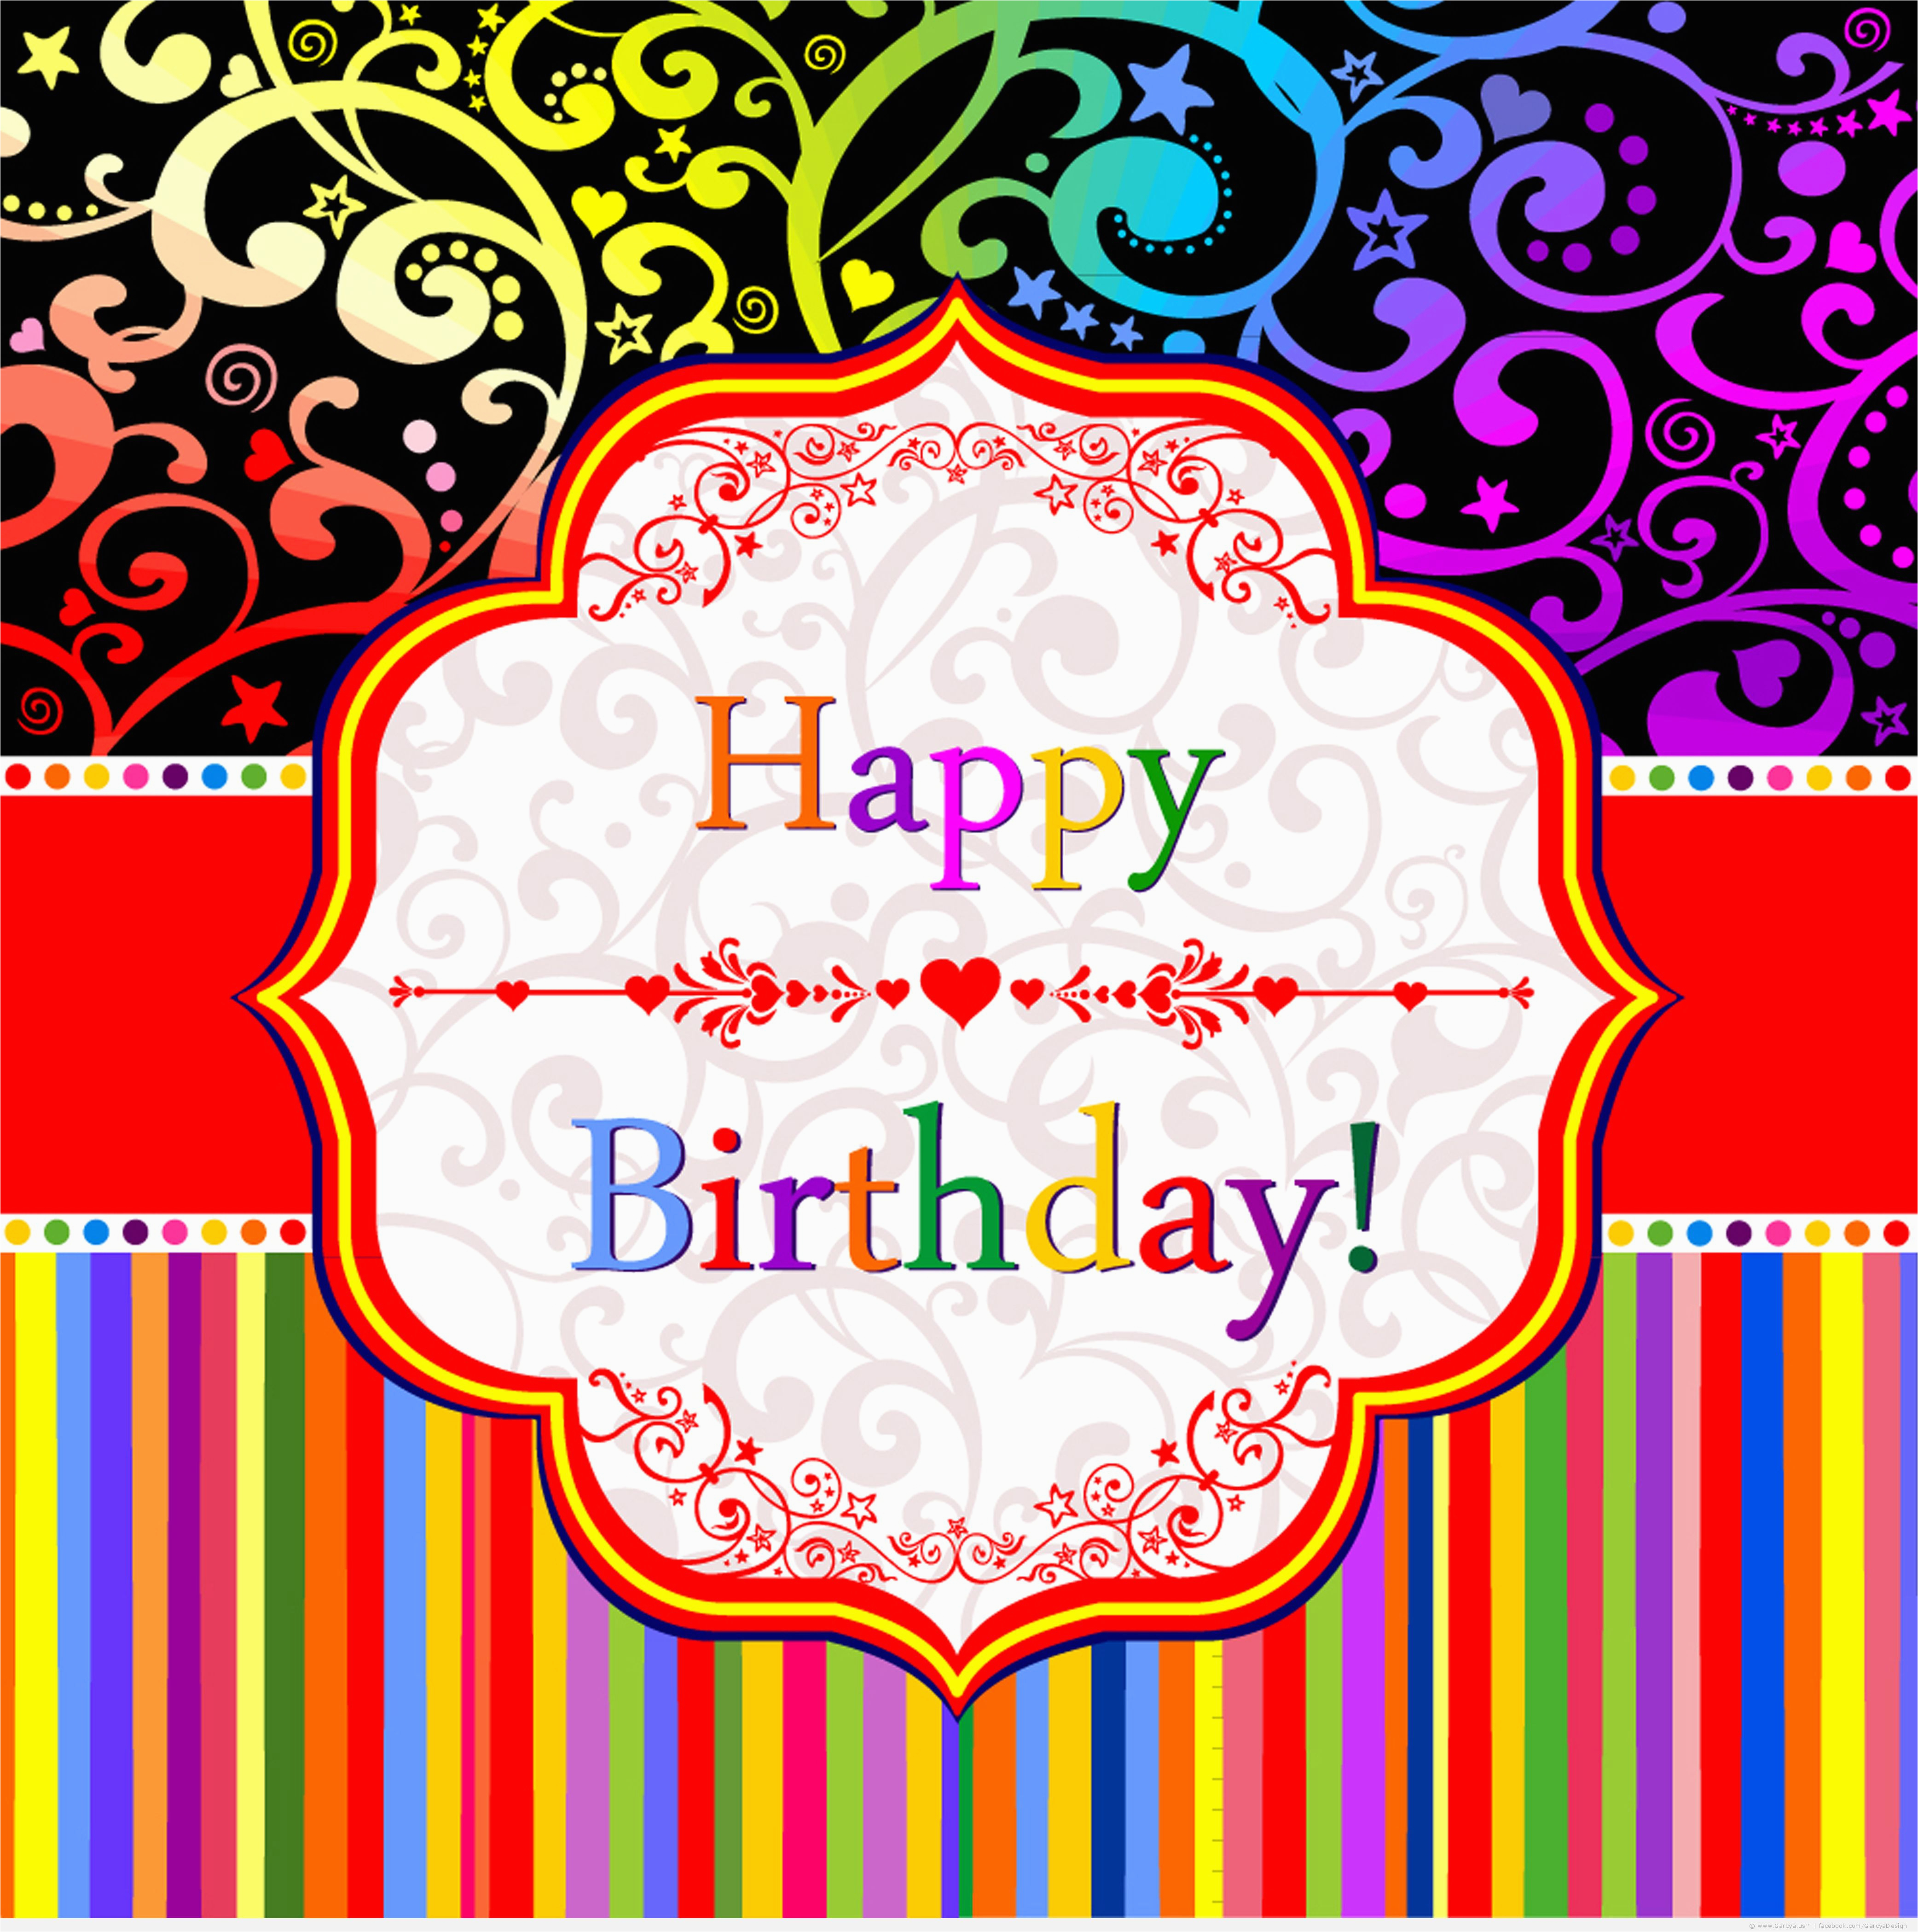 Birthday Card For Teacher Printable The Collection Of Deep And Heartfelt Wishes